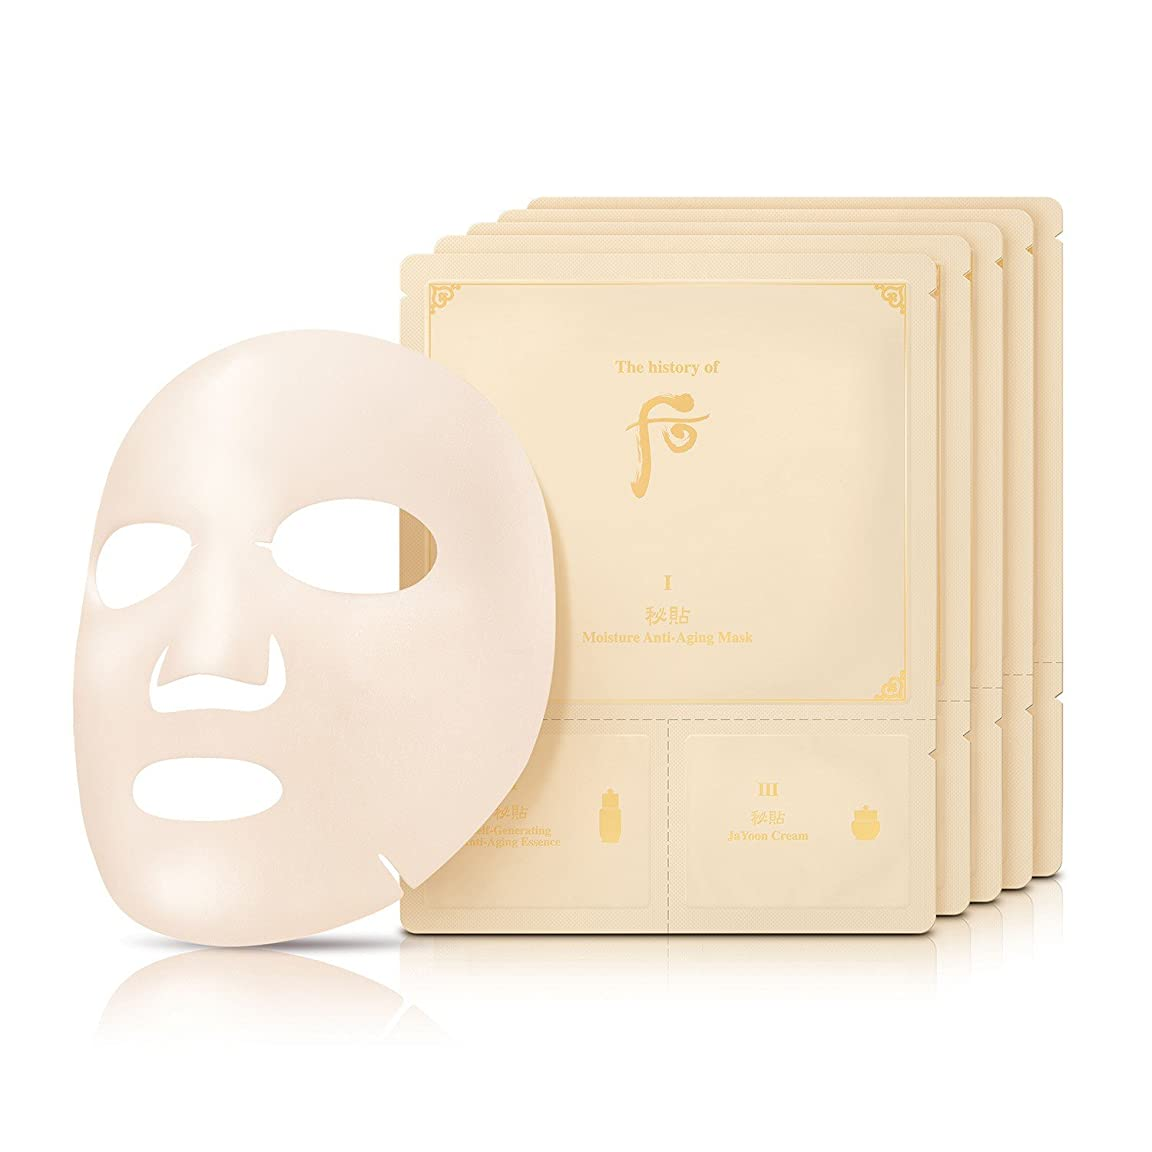 [The History Of Whoo] Whoo 后(フー) WHOO BICHUP SOOHWAN MASK (AUTHENTIC PRODUCT, 5 SHEETS)/ビチョプ循環マスク + Sample Gift [海外直送品]